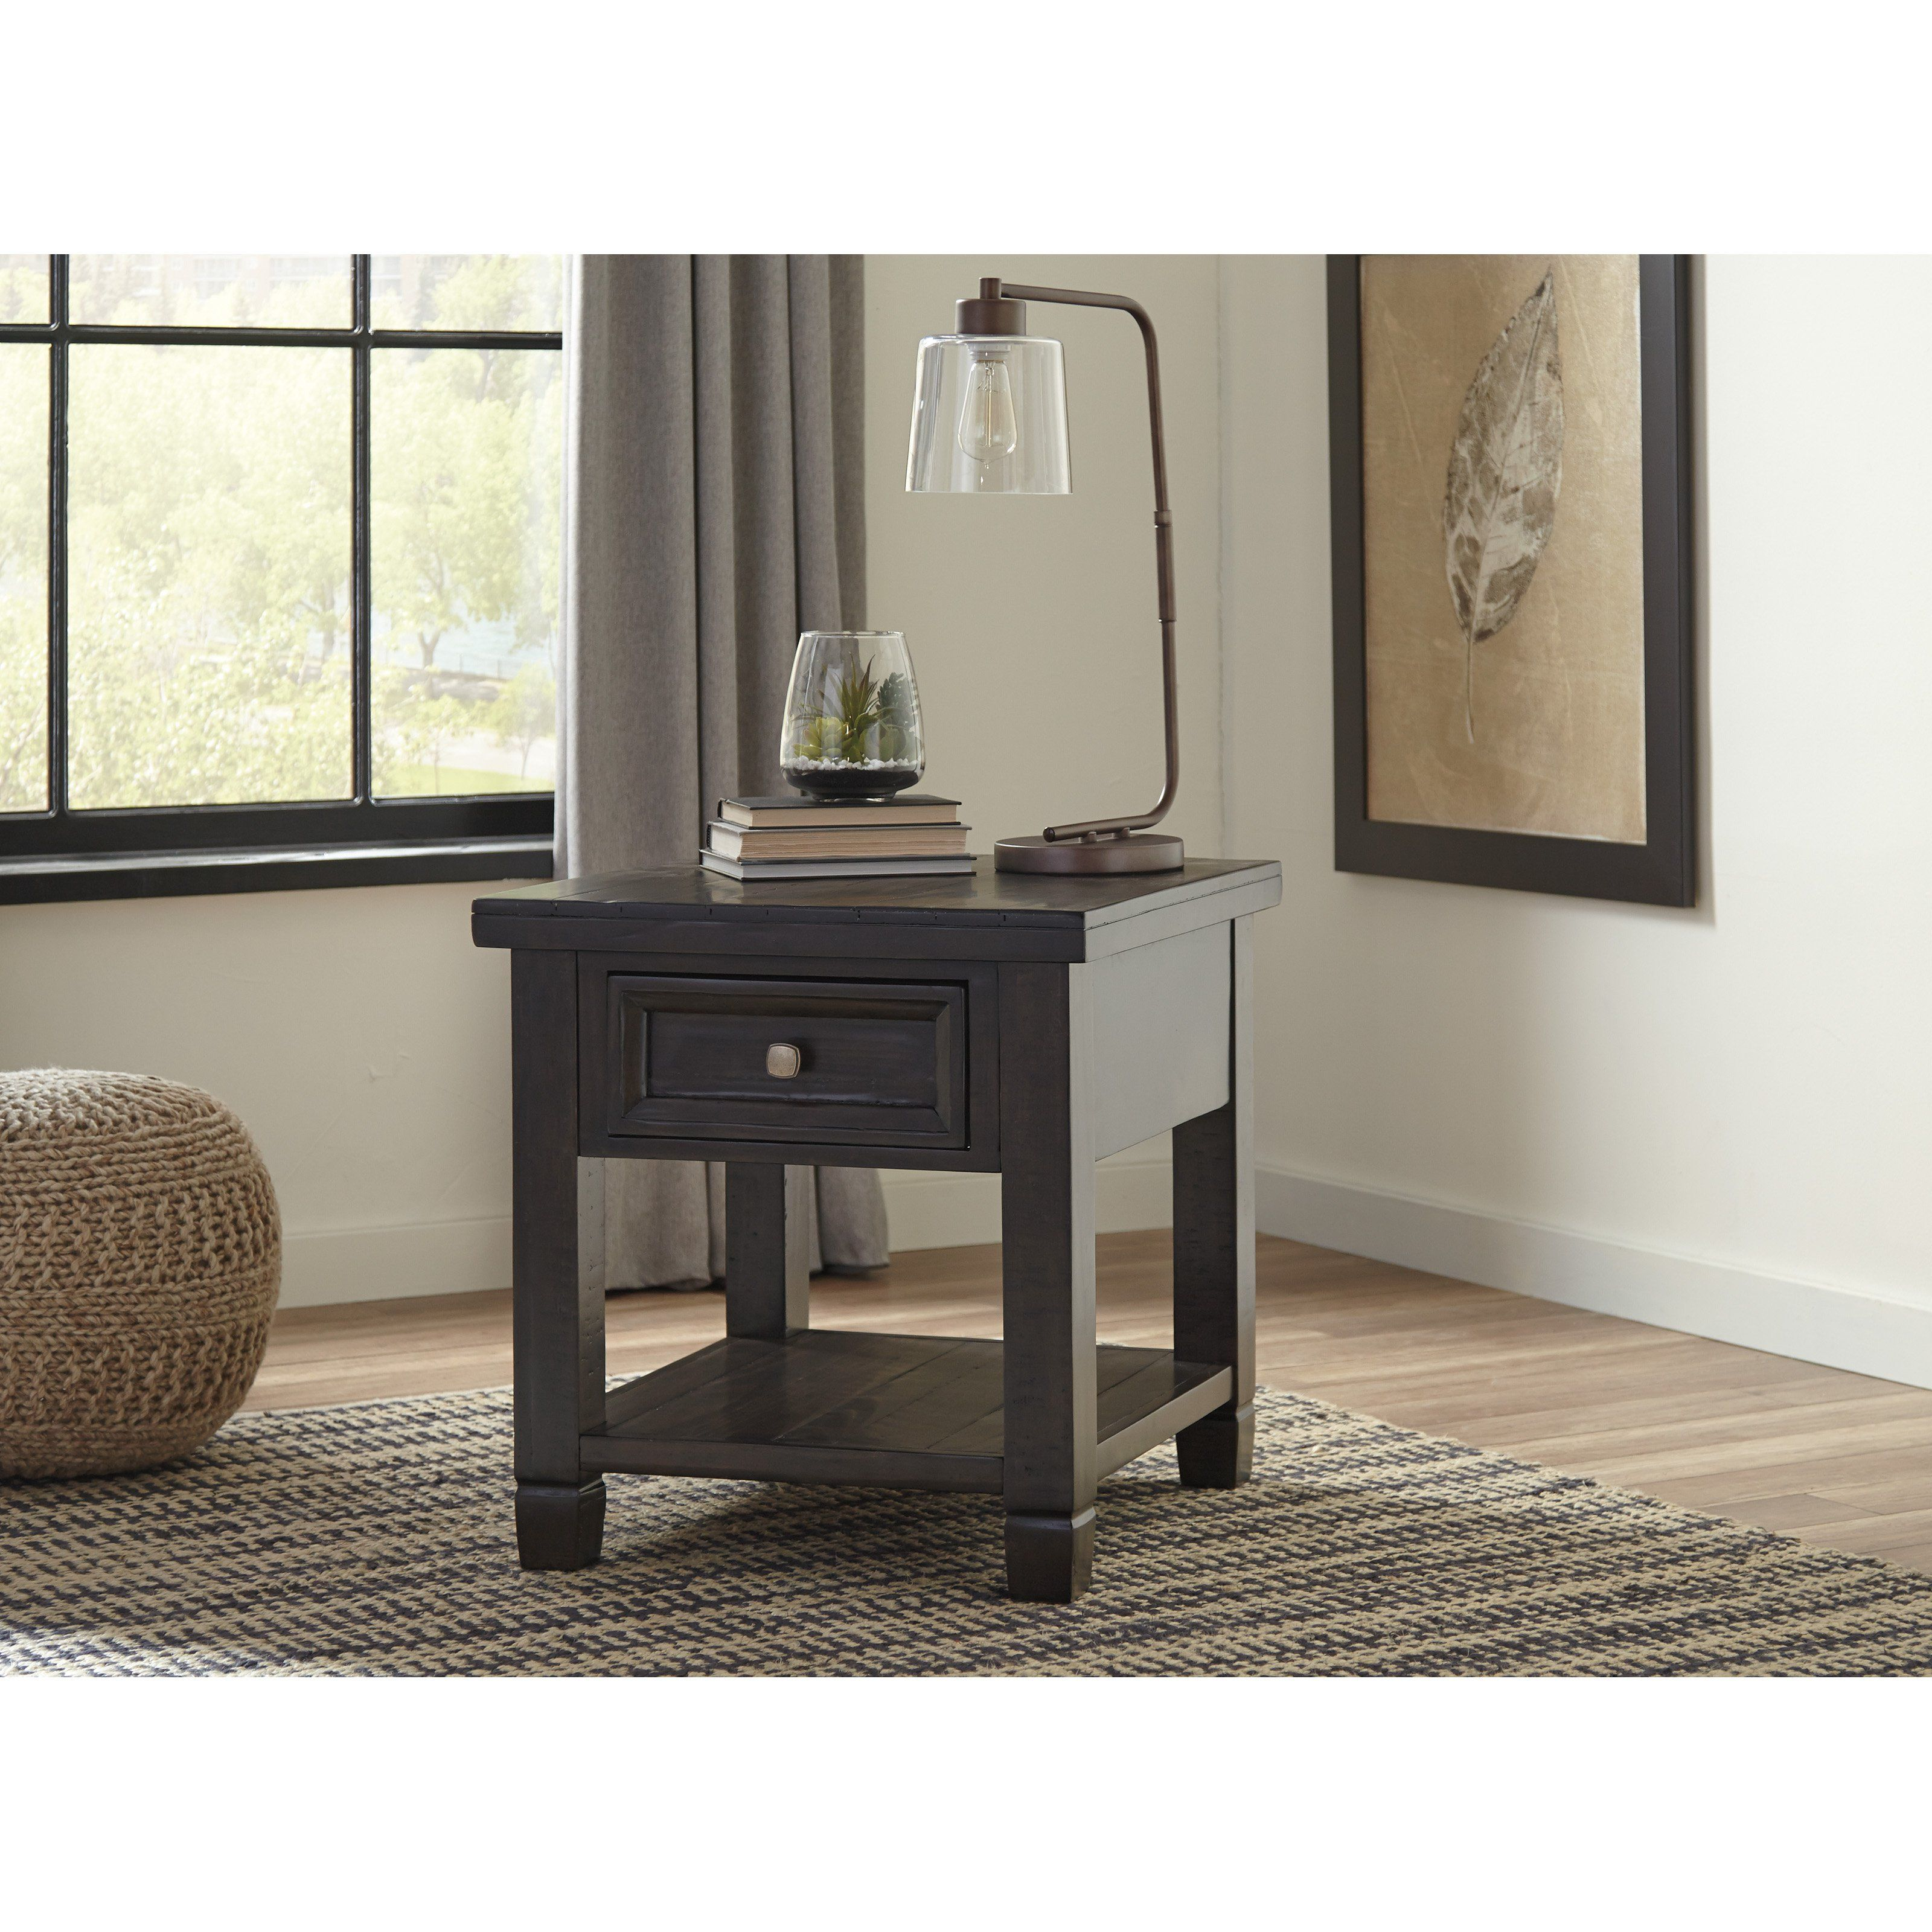 signature design ashley townser rectangular end table tables sets kmart bedding stained glass accent wooden tree trunk inch legs dog crate furniture plans floor rugs high arm